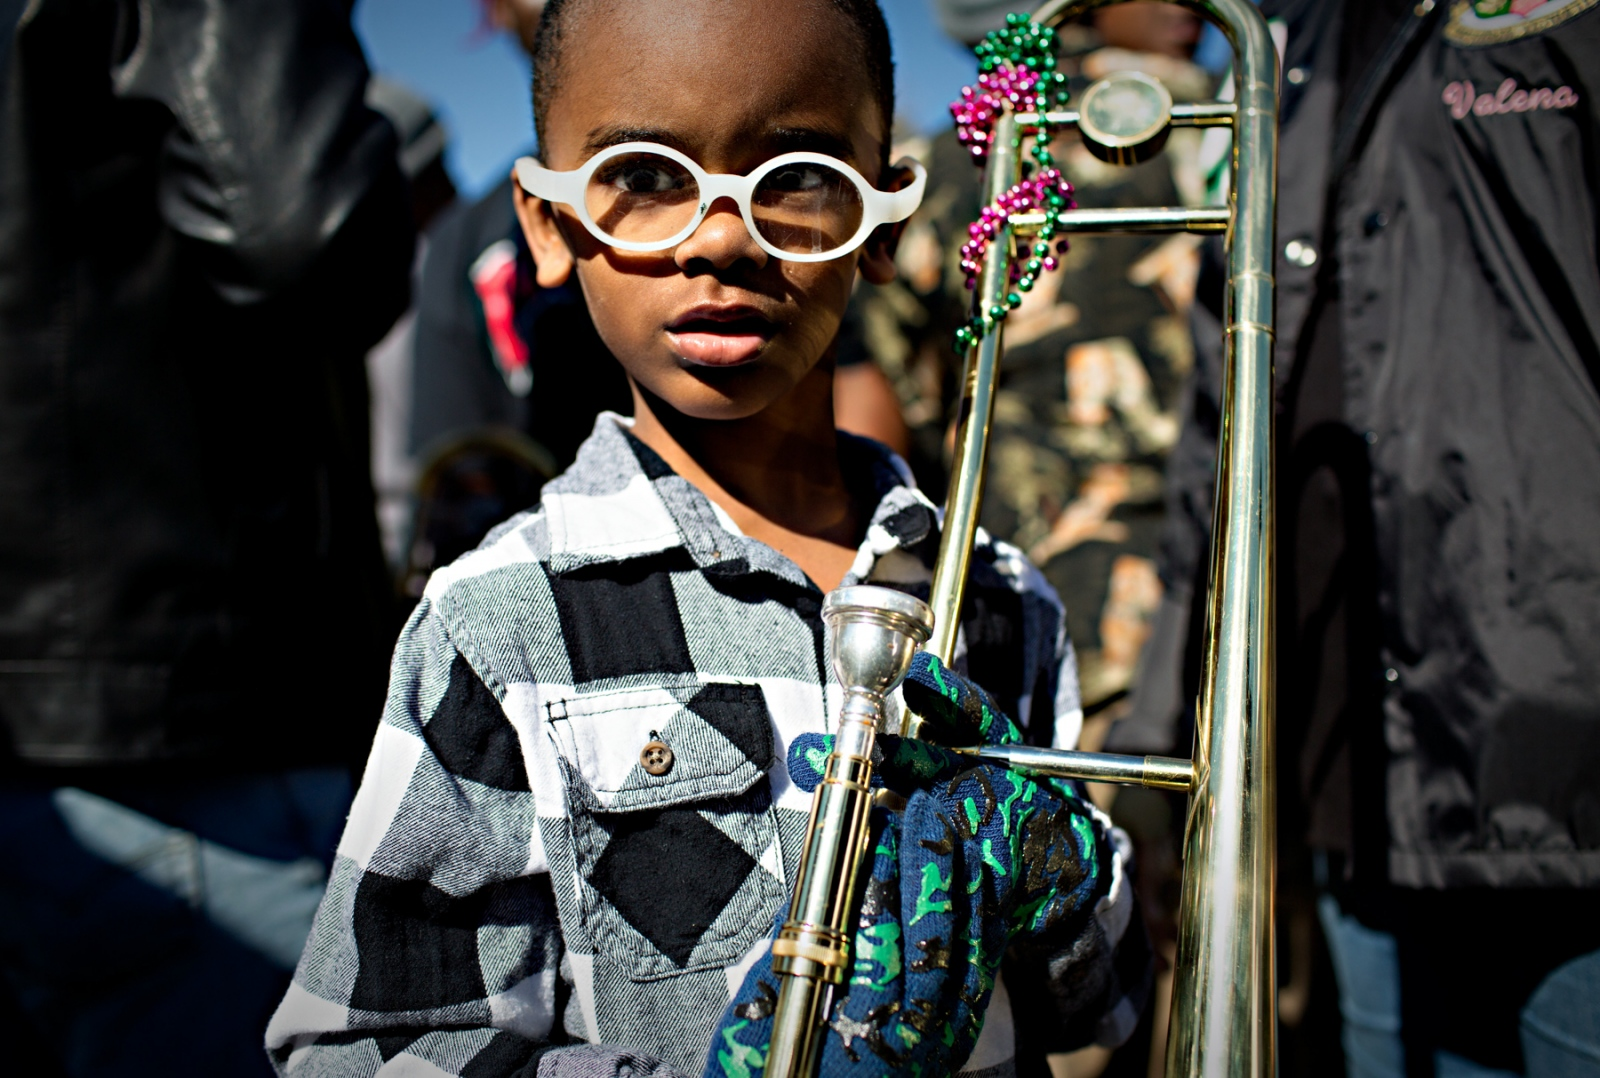 Five years old Alvin Coco has played the trombone since he was two and this Sunday he played with the main band leading the parade.